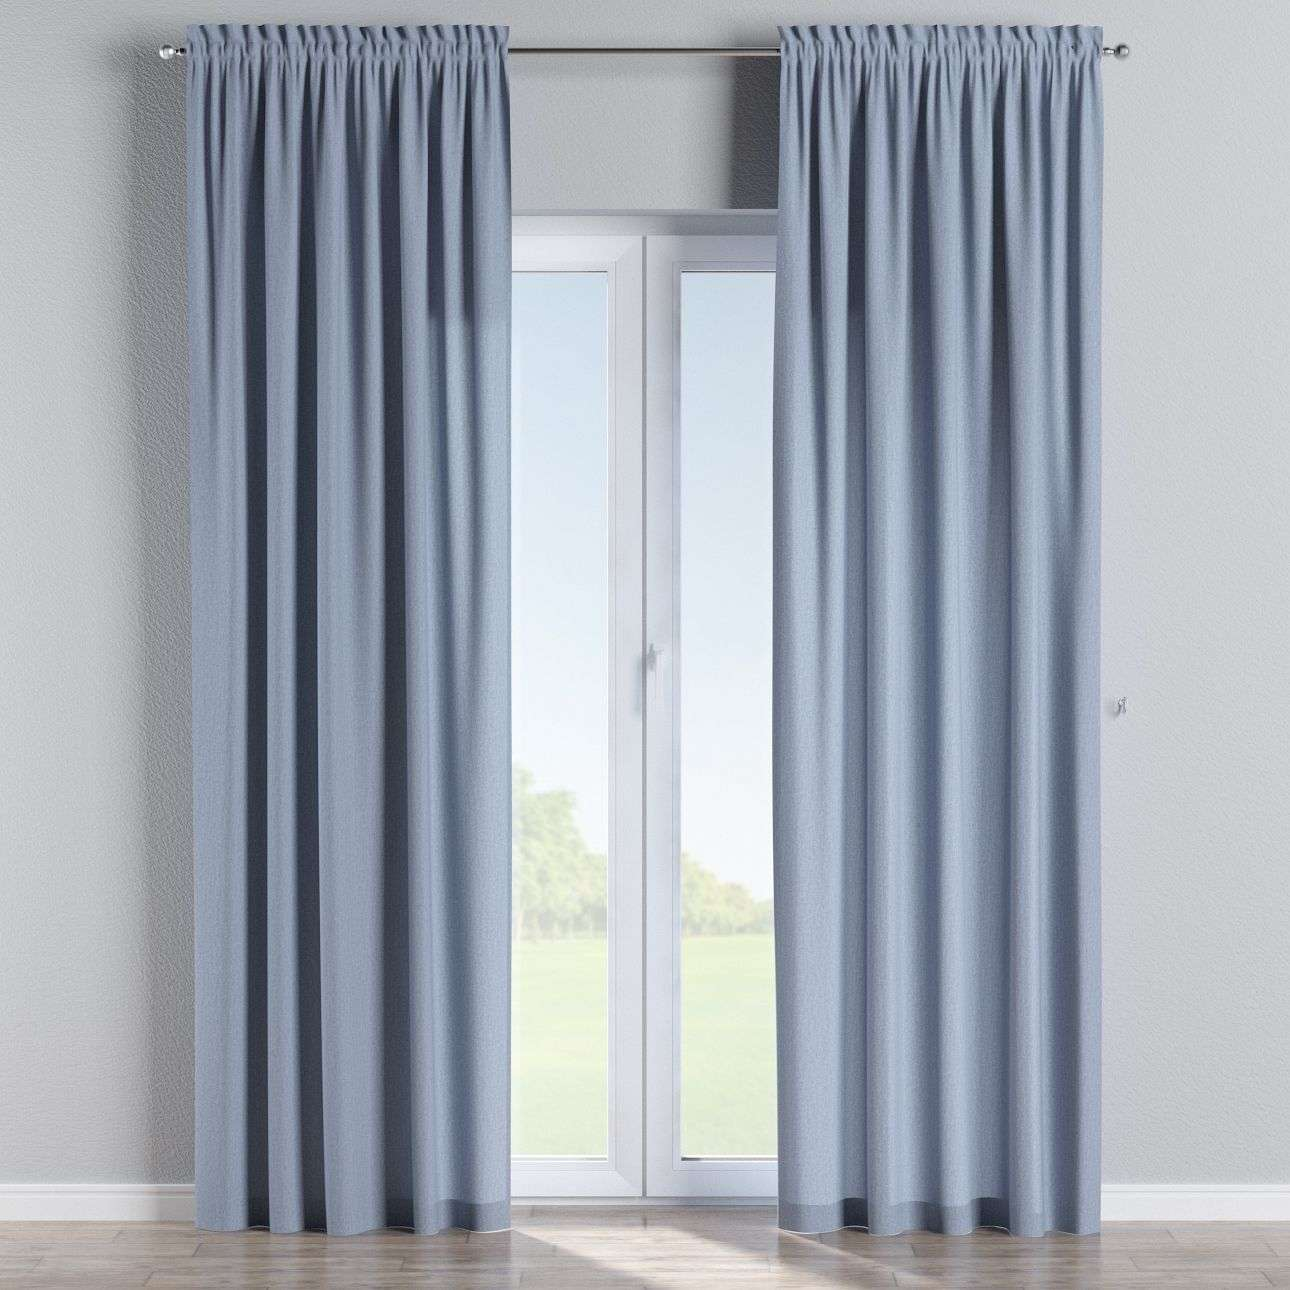 Slot and frill curtains in collection Chenille, fabric: 702-13